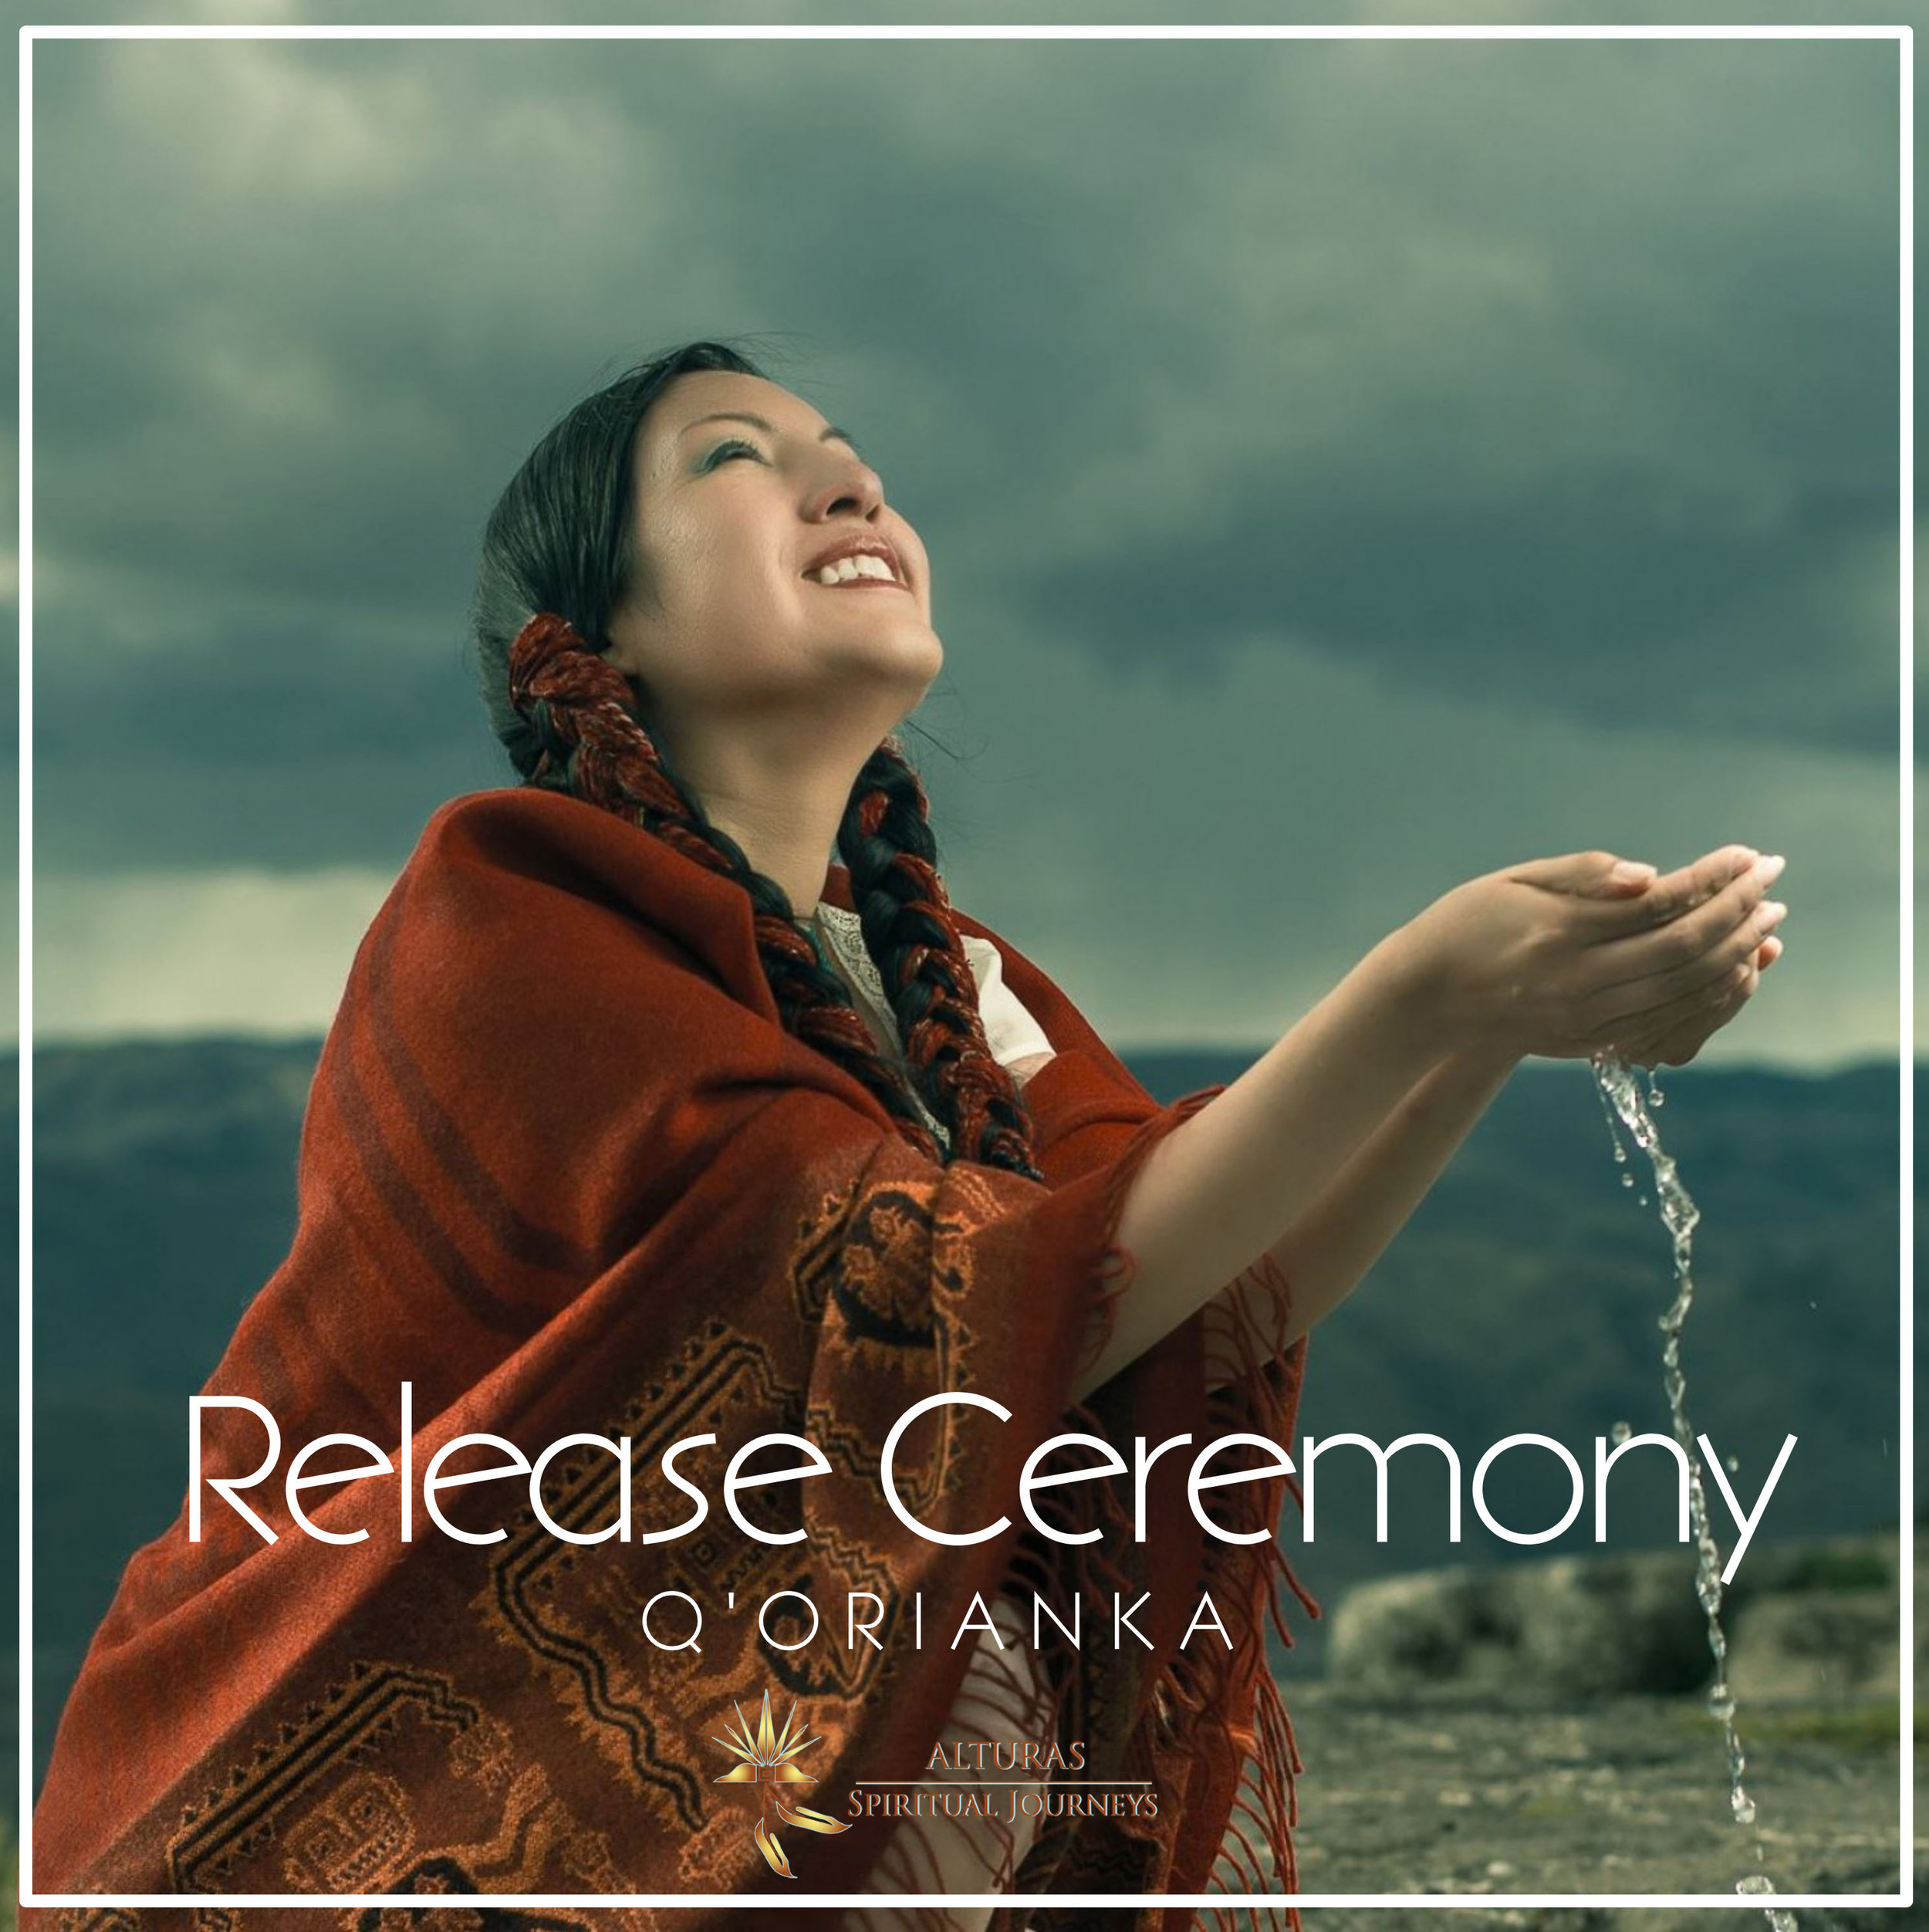 Sign Up forRELEASE CEREMONY & Stay Connected - Receive this unique Free Gift Audio transmission infused with the energy vibration of freedom and our biweekly newsletter.